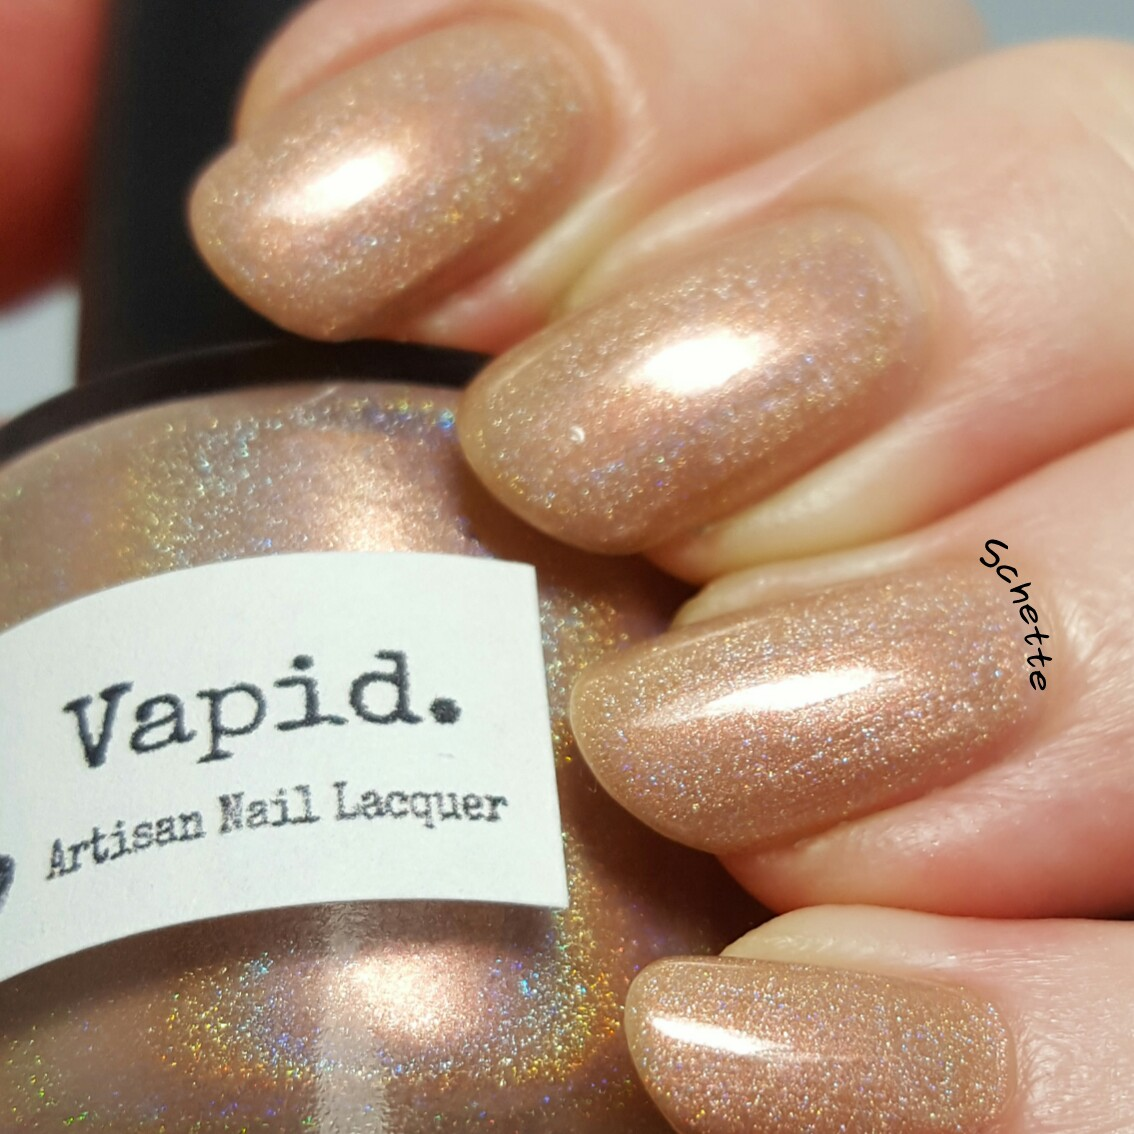 Vapid Lacquer - Surprise, I am drunk